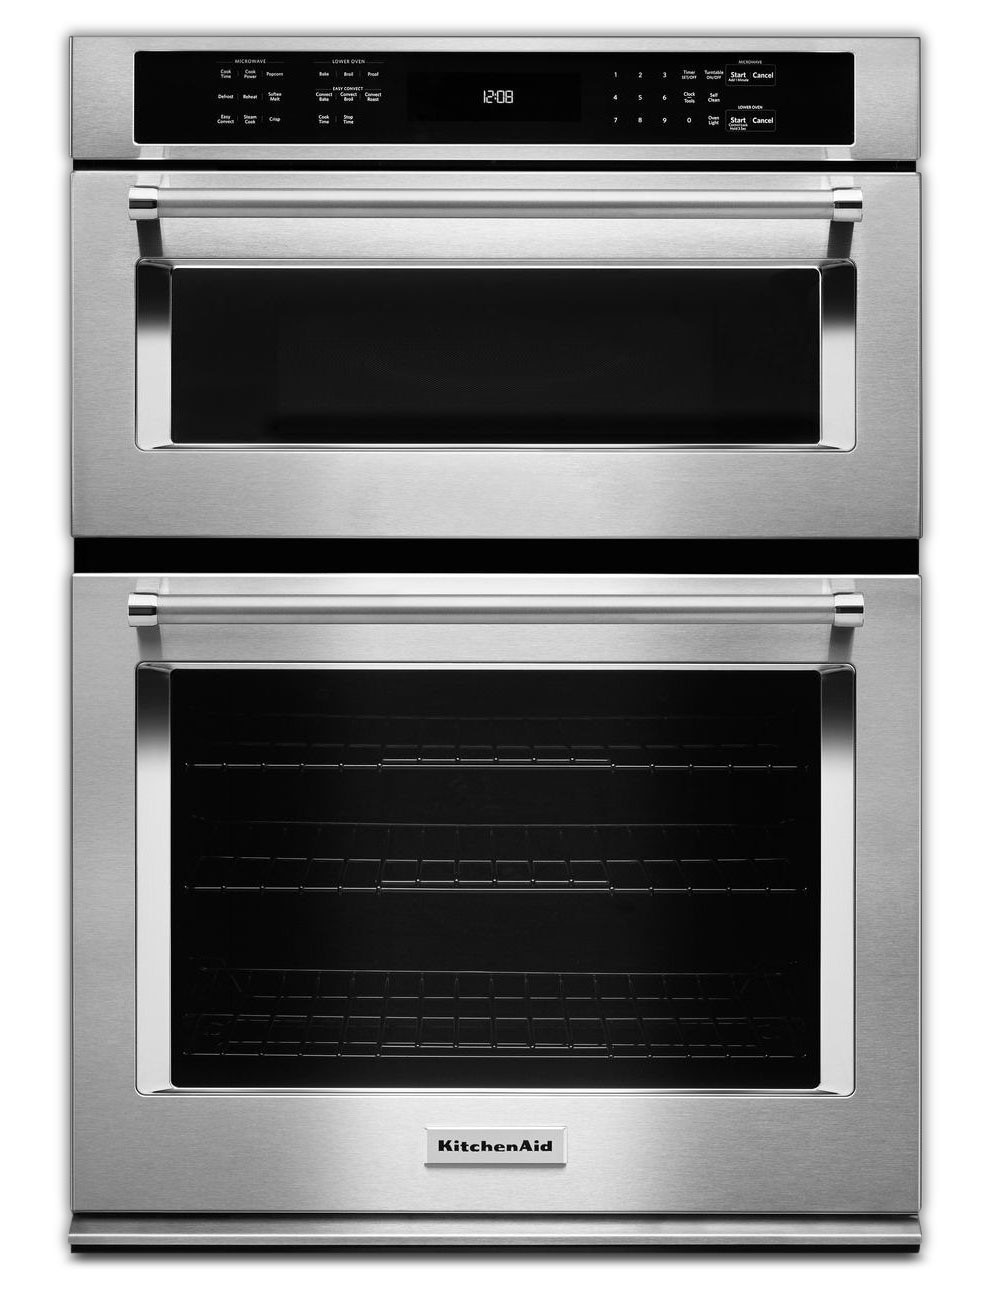 Kitchenaid Stainless Steel Wall Oven 5 0 Cu Ft W